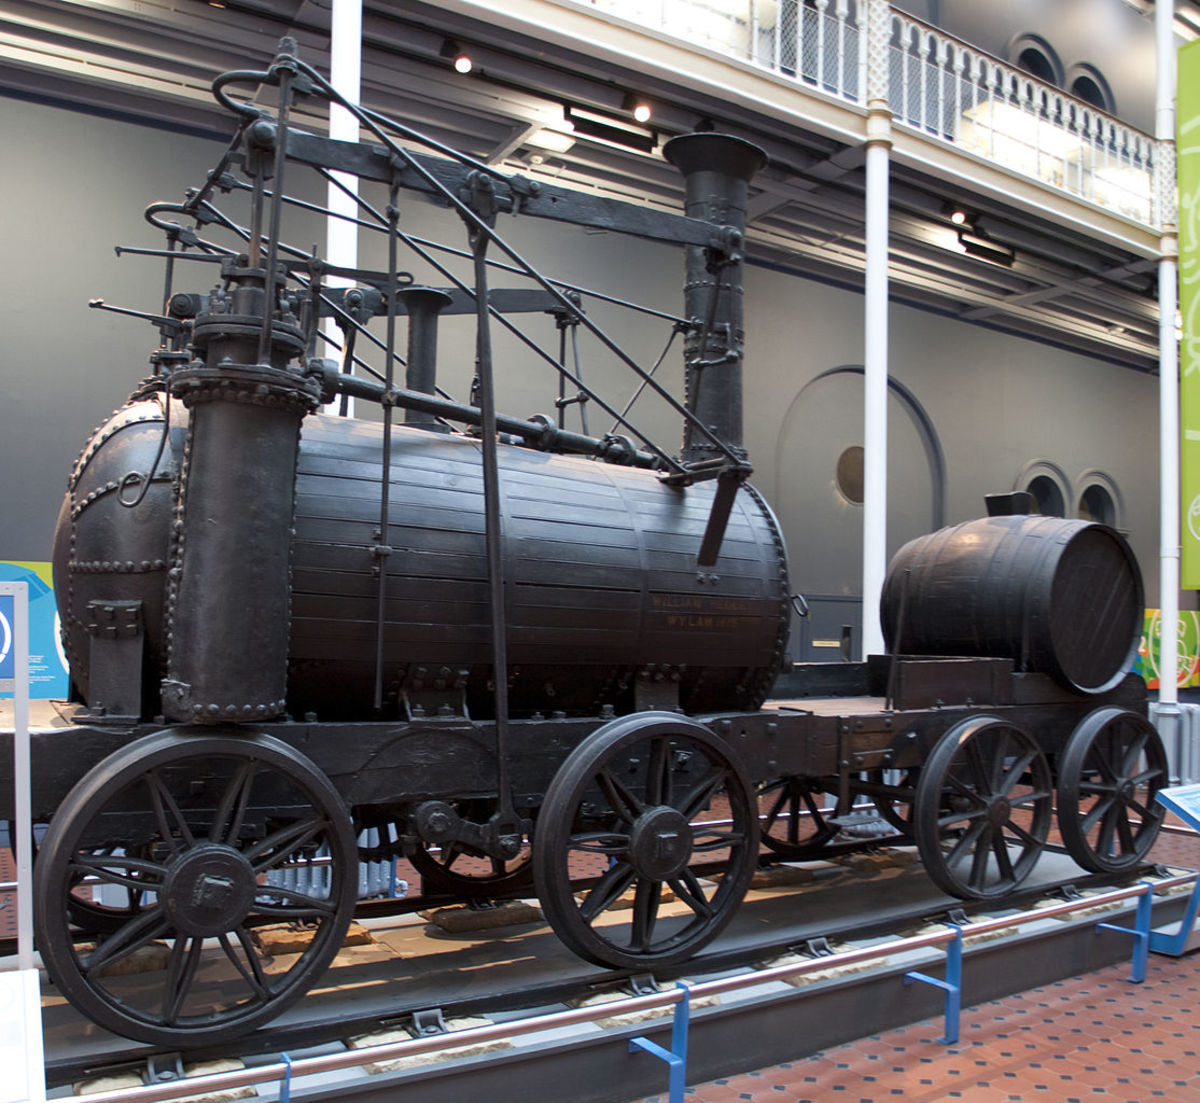 'Wylam Dilly', (pron. 'Willam') one of Timothy Hackworth's early locomotives built under contract